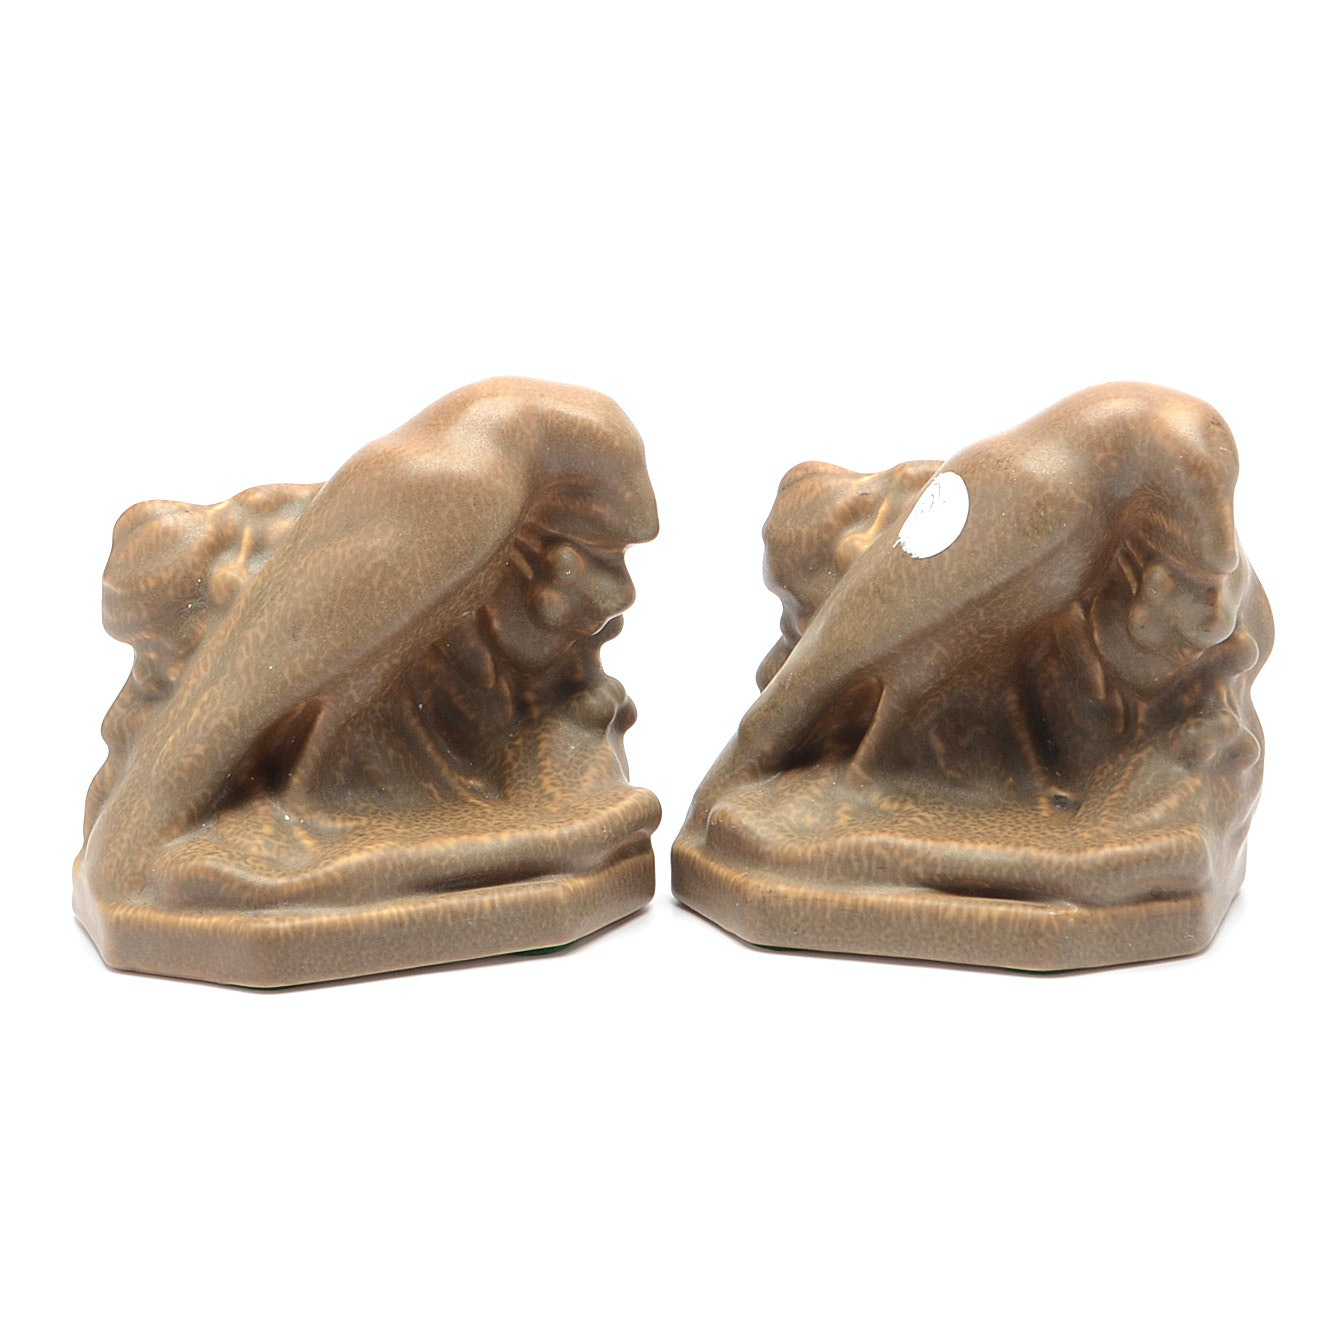 Rookwood Pottery 1921 Rook Bookends